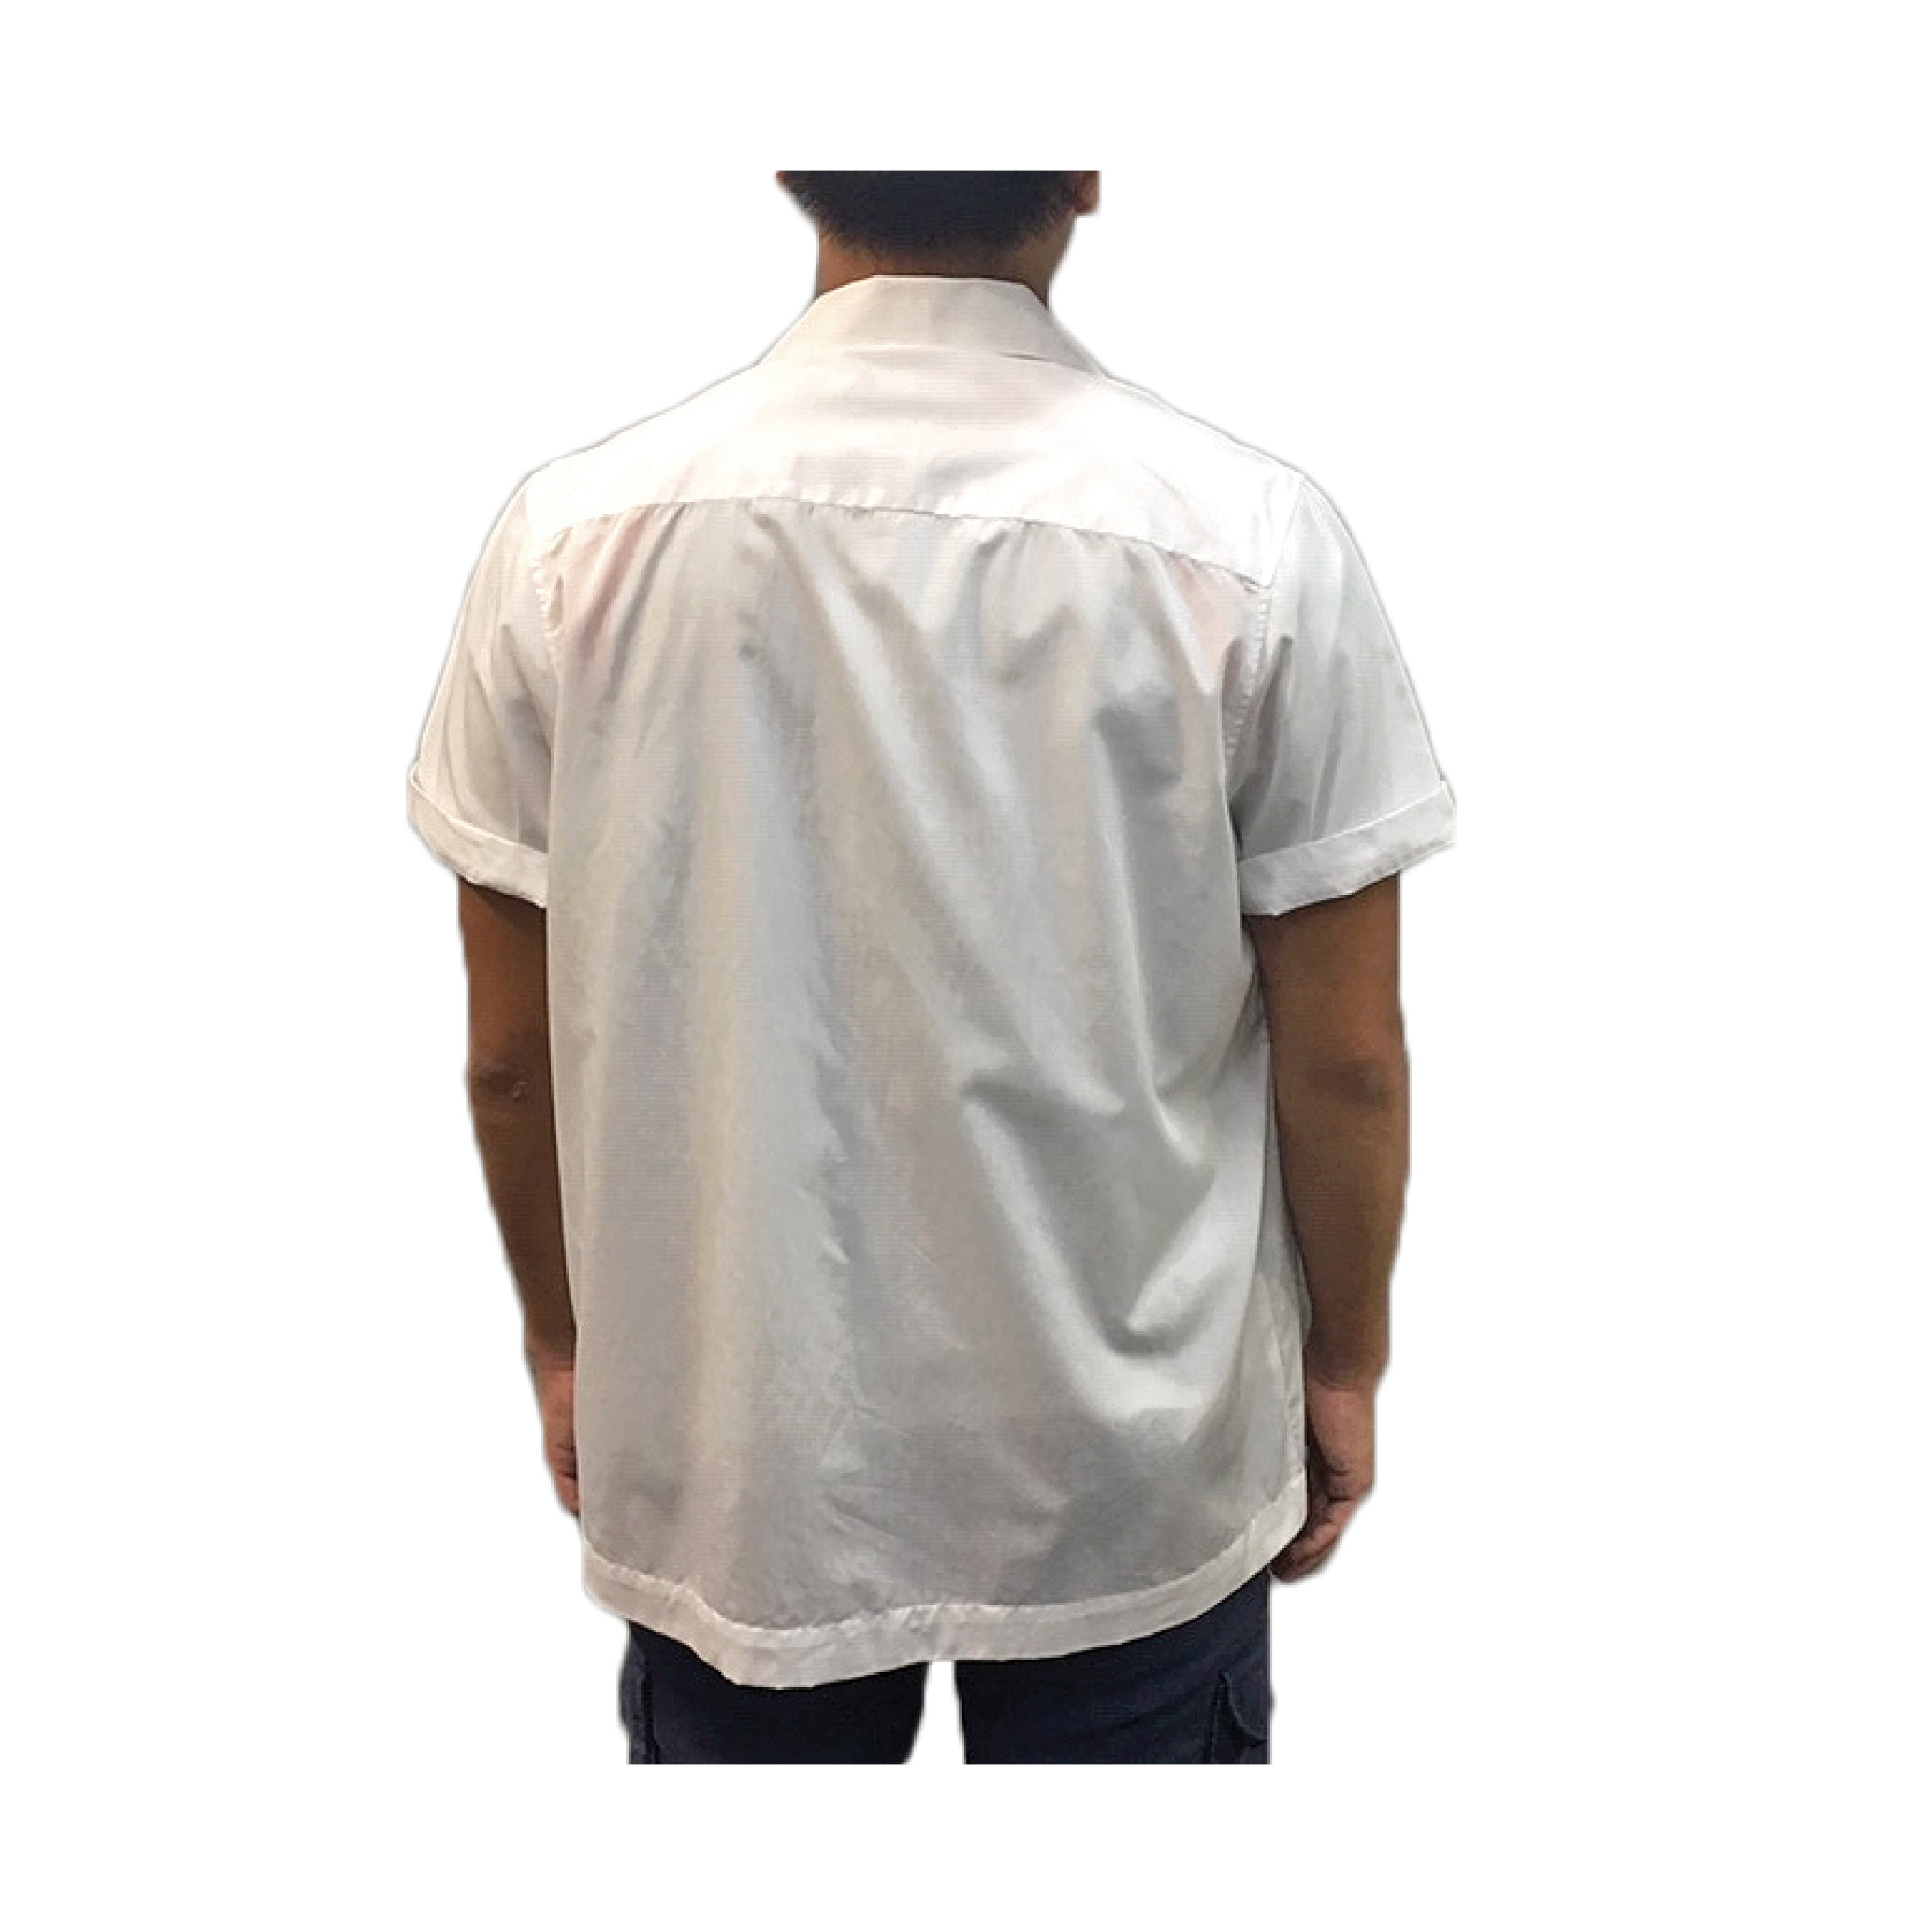 Short sleeves men shirts